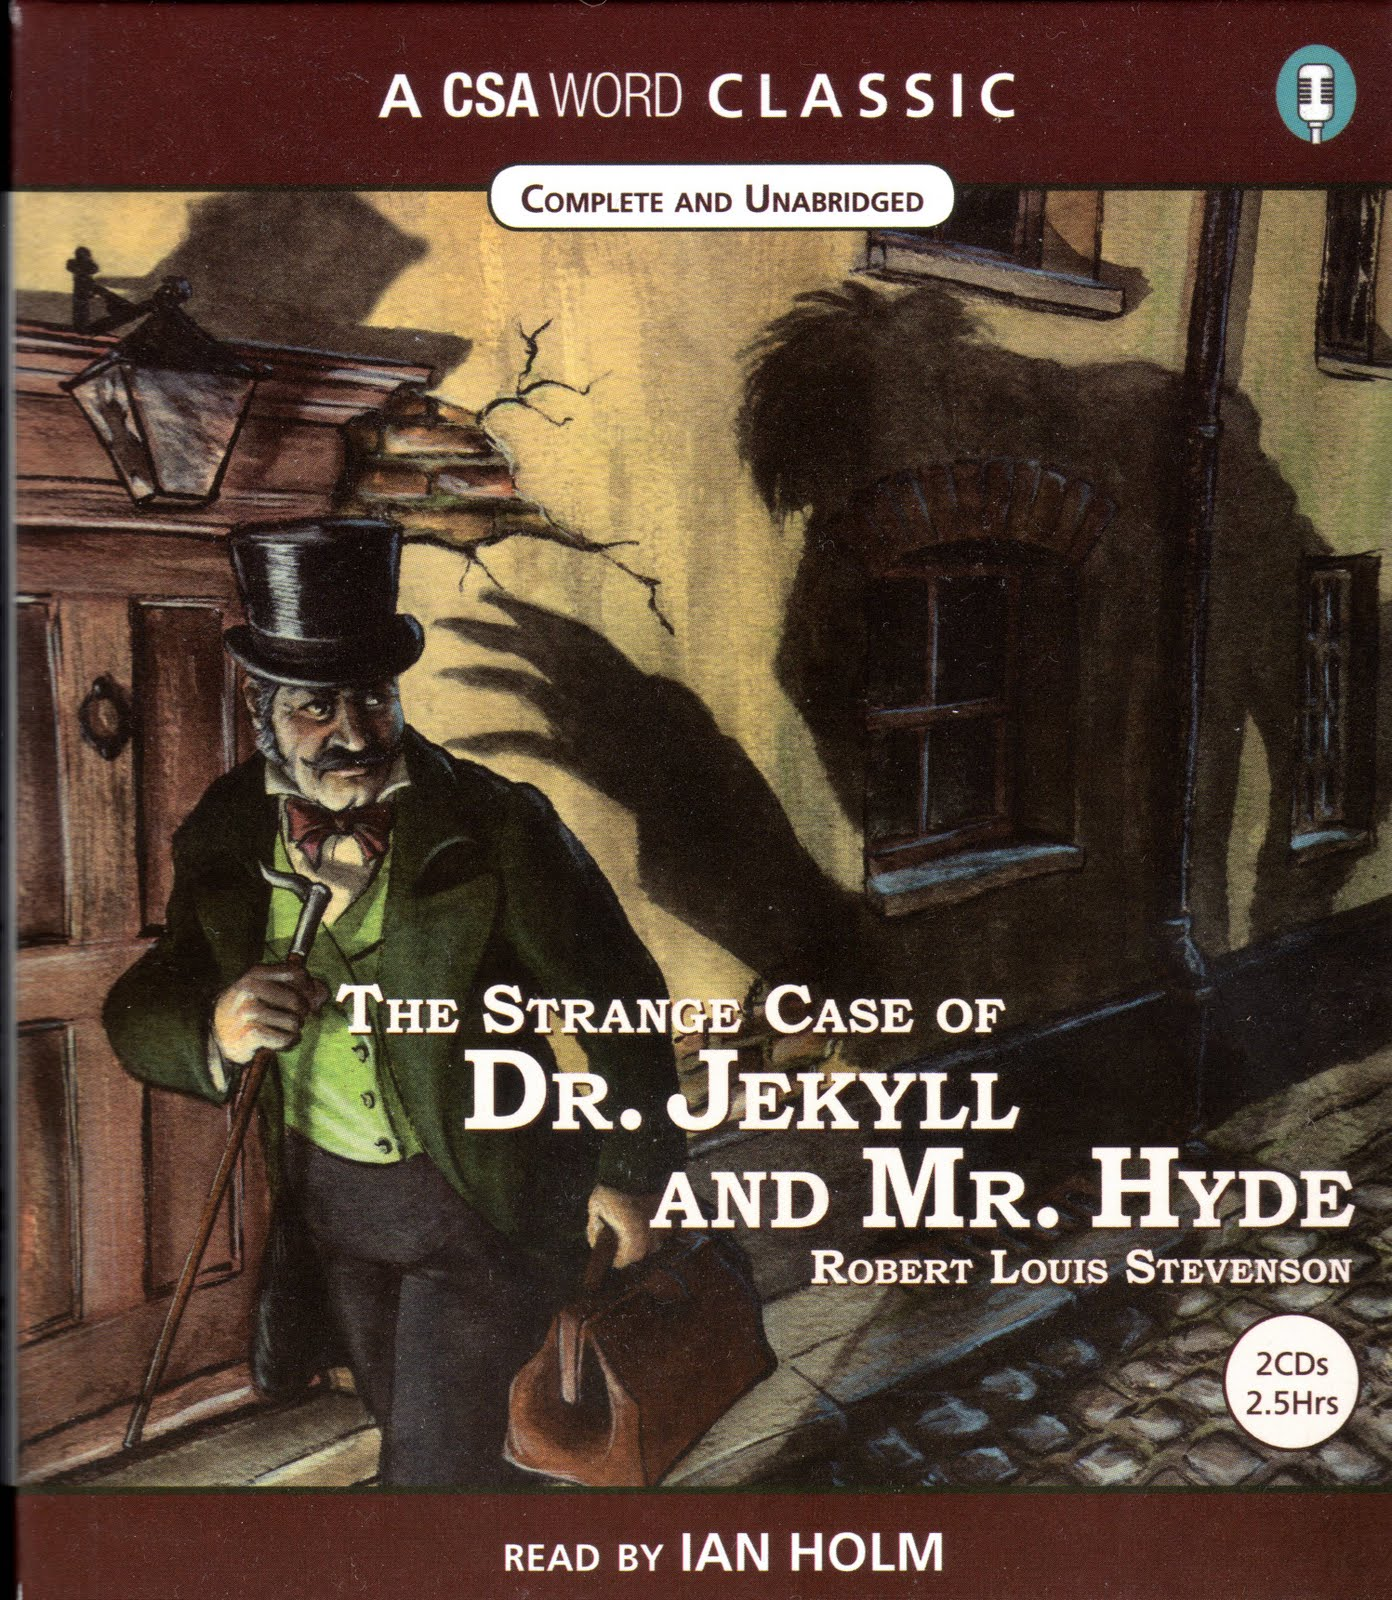 The strange case of dr jekyll and mr hyde coursework